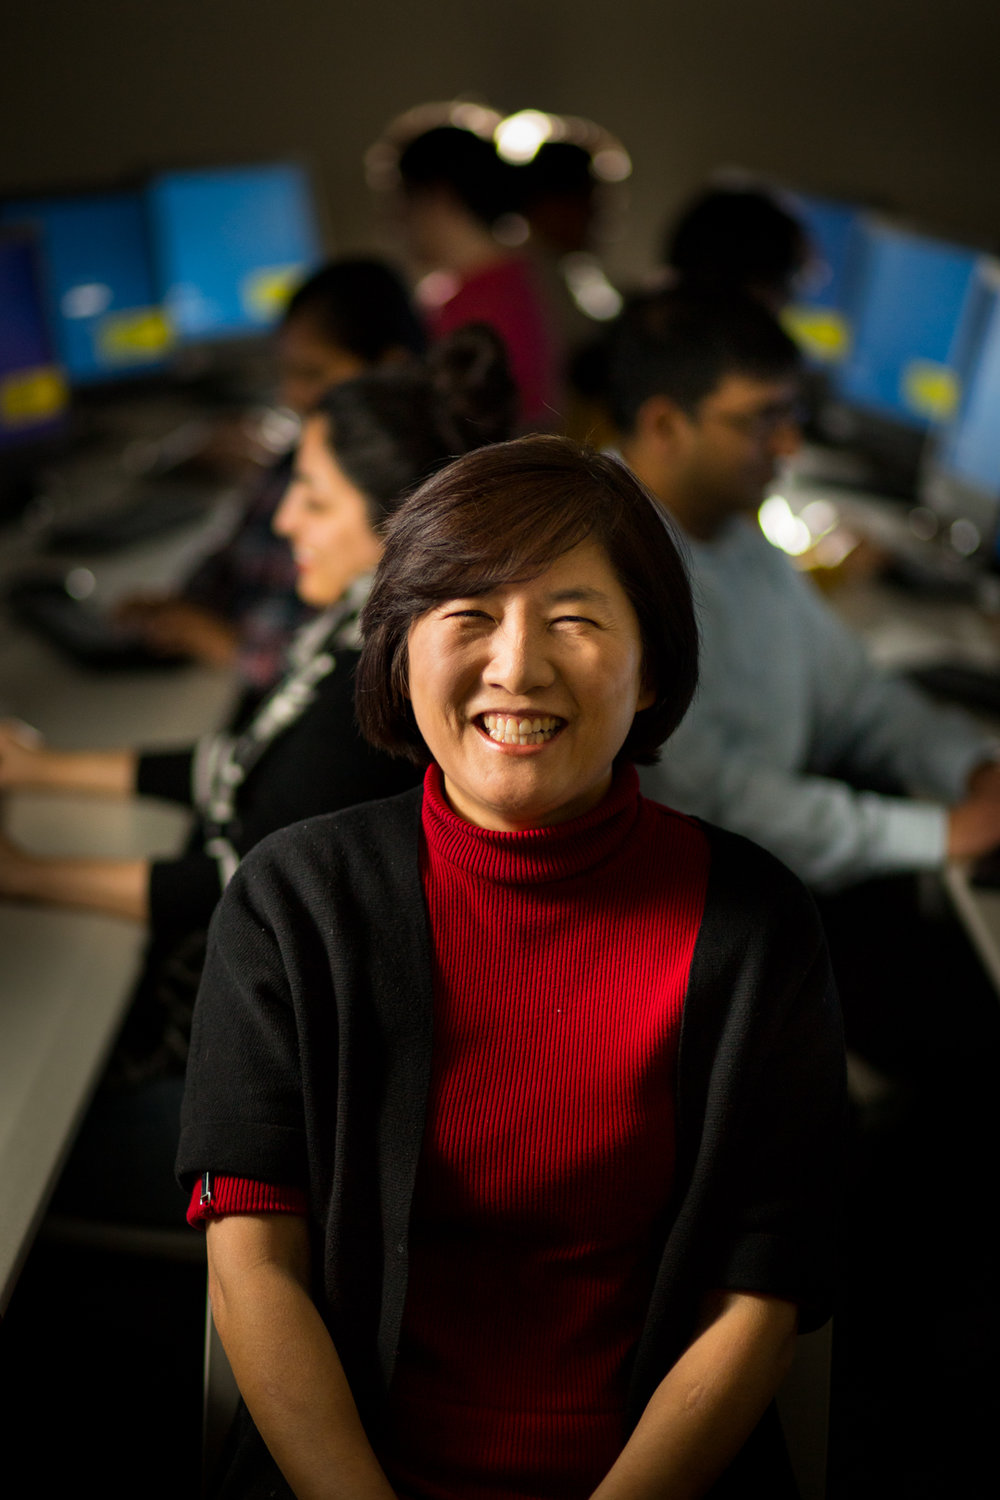 SCE Dr. Lee portrait in computer lab with students-7-6710.jpg